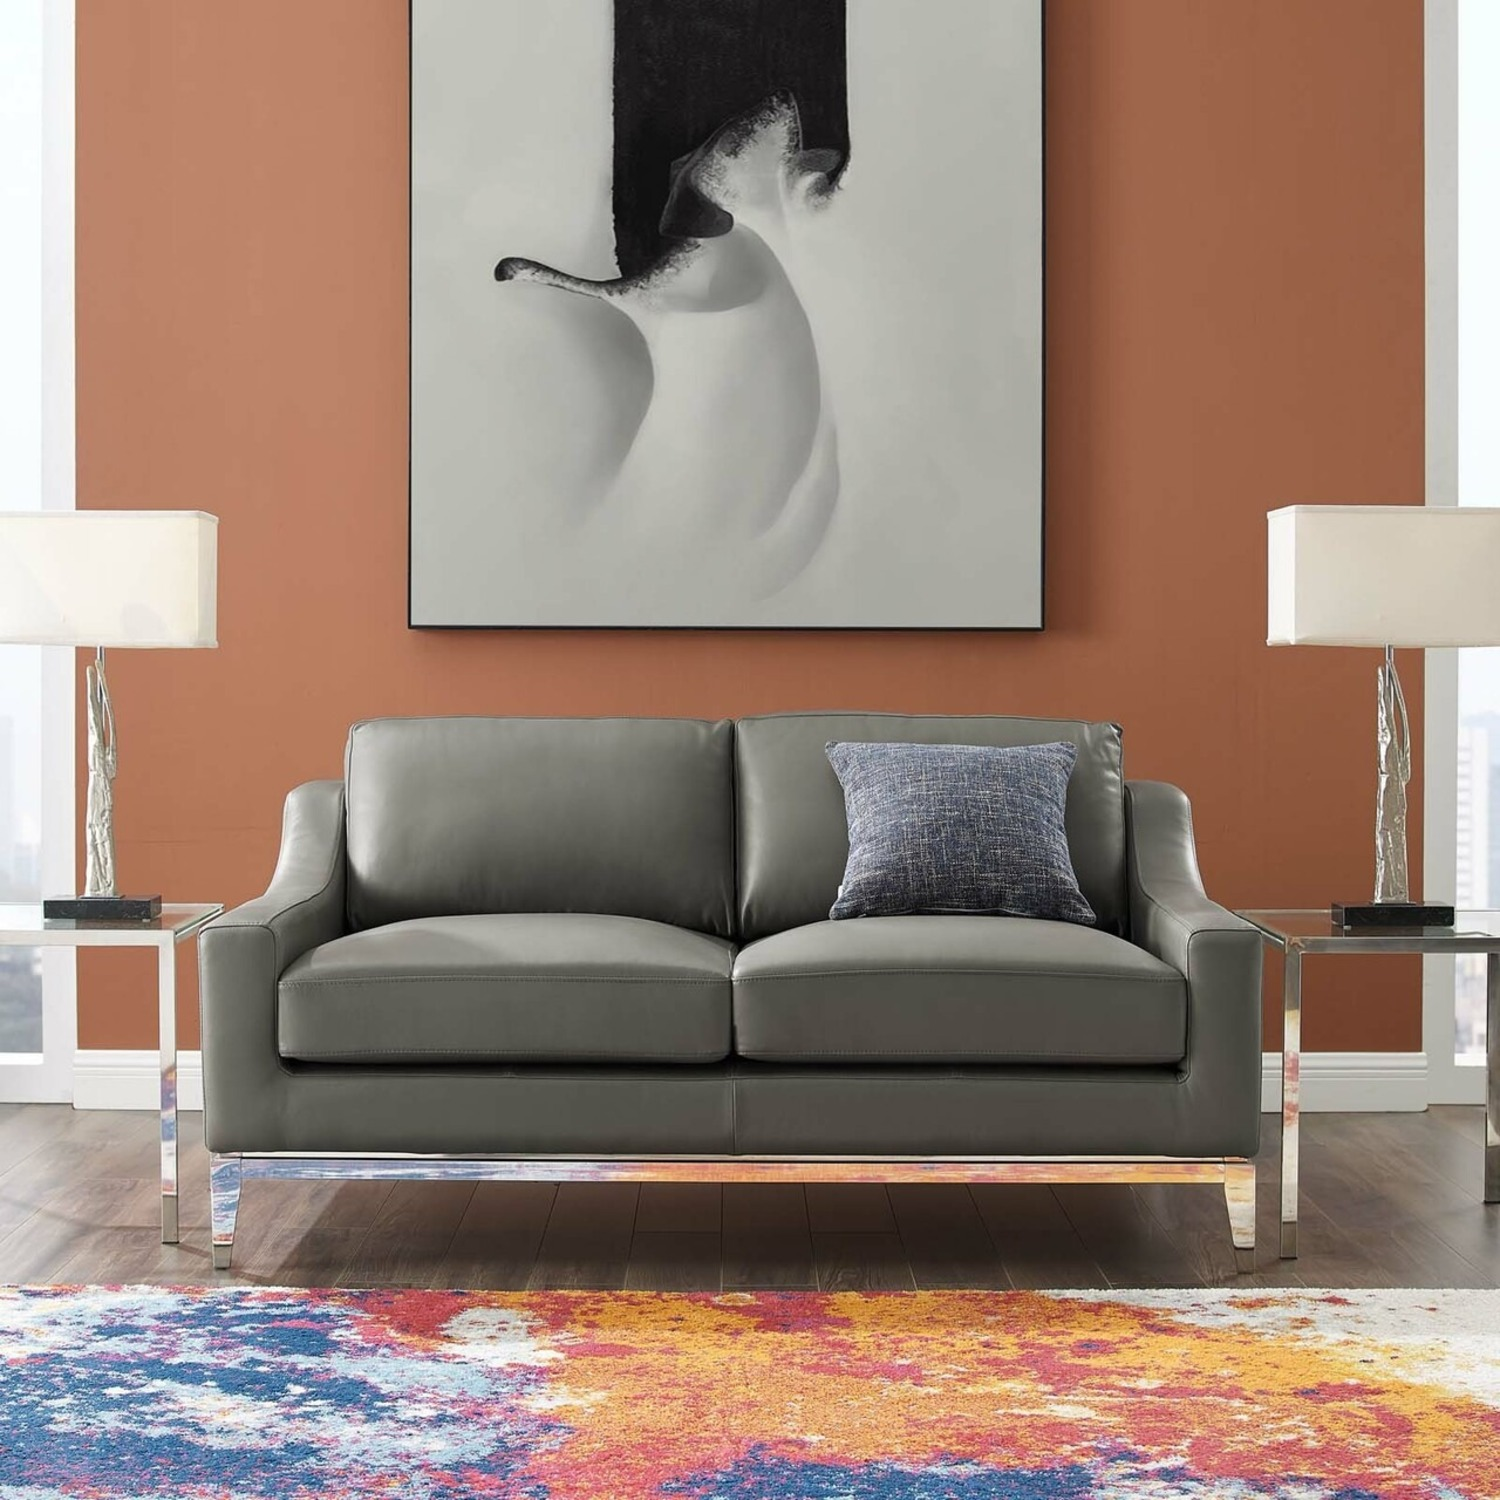 Loveseat In Gray Leather W/ Stainless Steel Base - image-5